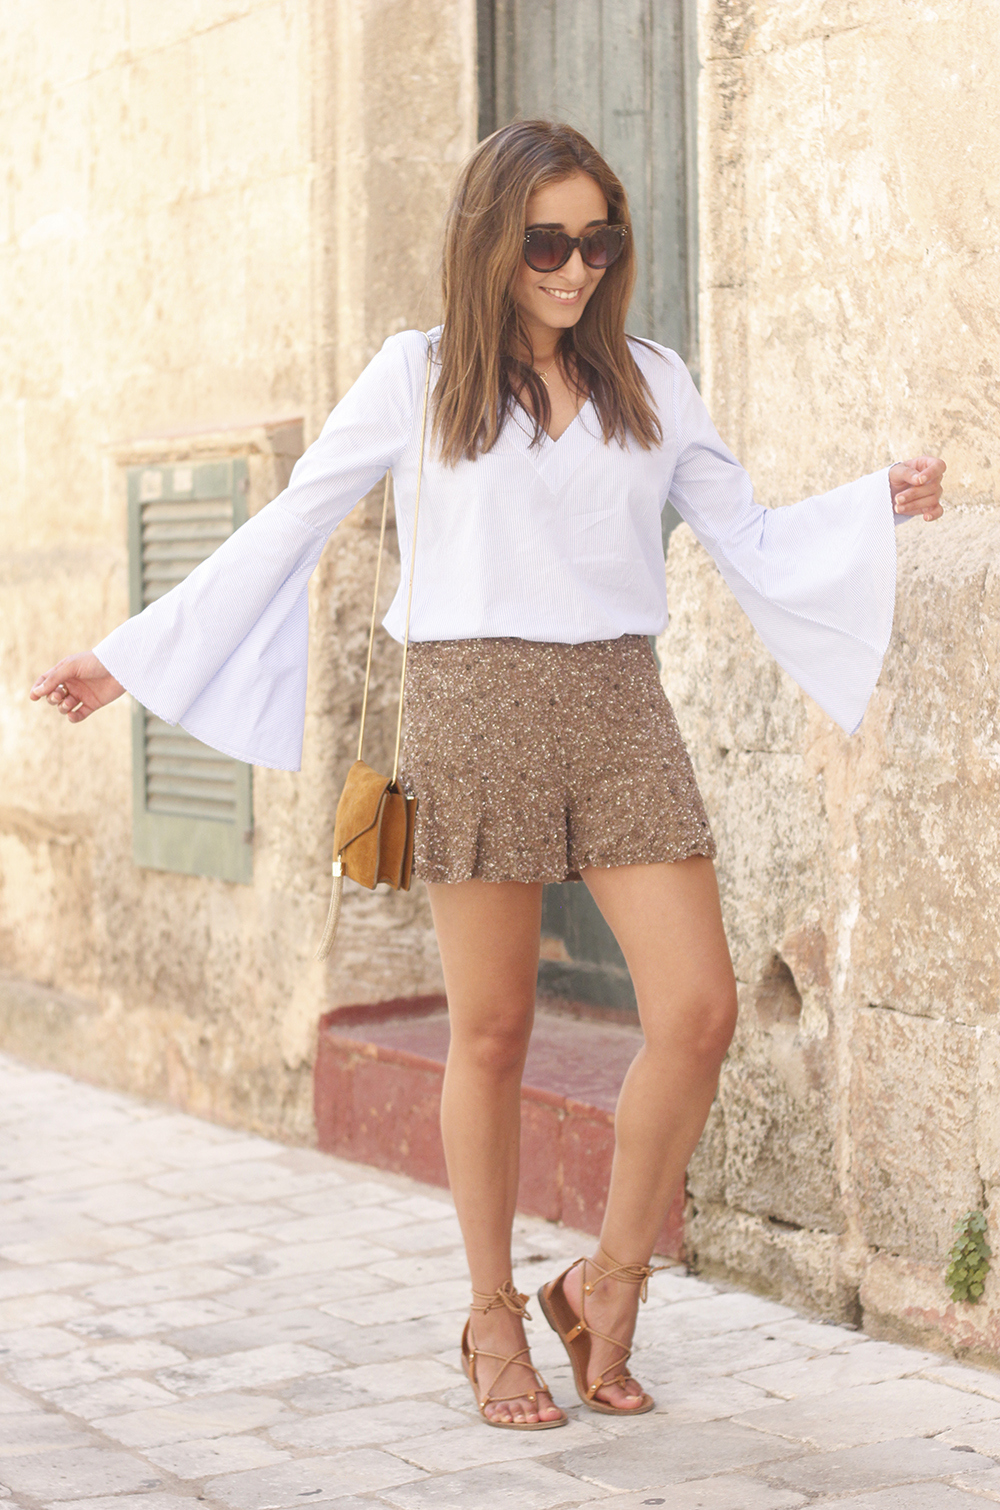 sequined shorts bell sleeves striped shirt summer flat sandals summer fashion outfit22